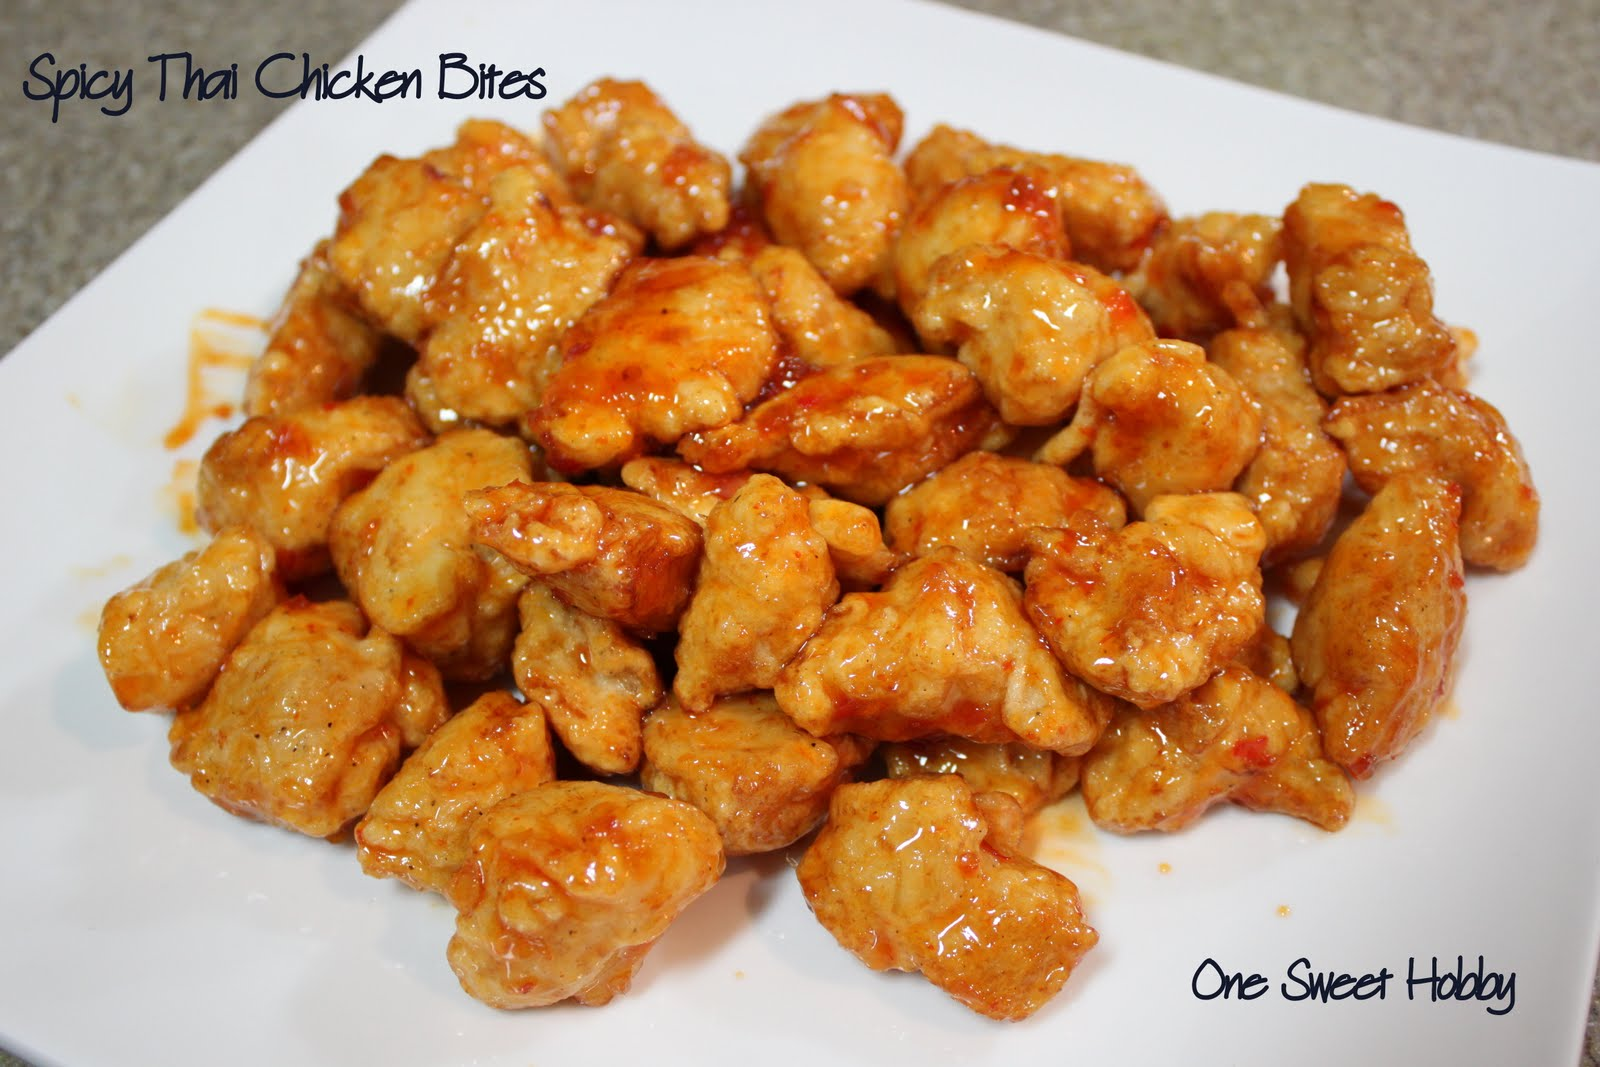 Sweet And Spicy Chili Sauce For Korean Fried Chicken Recipes ...